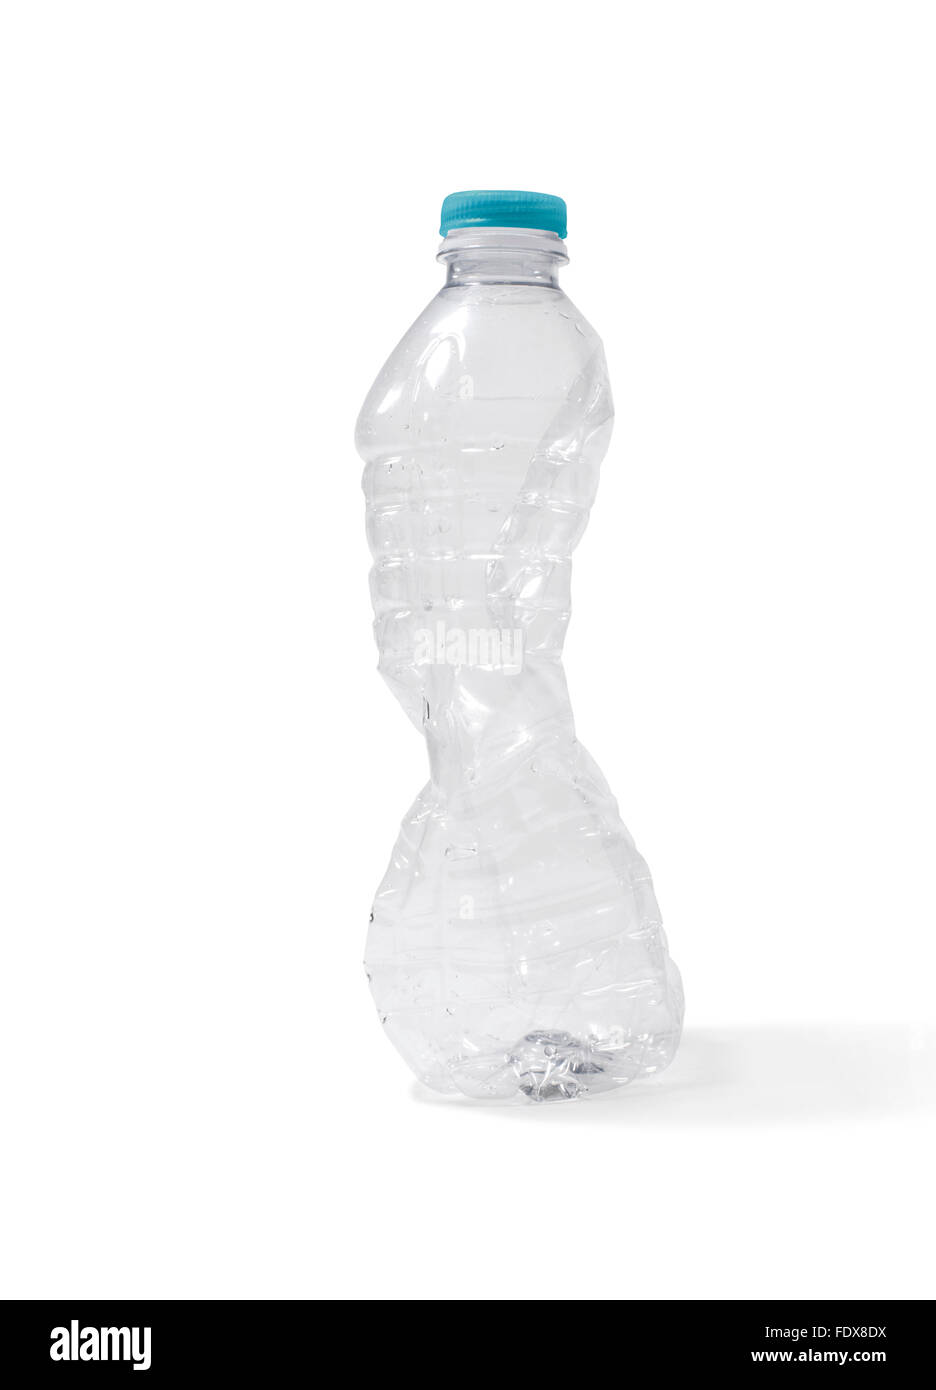 Studio shot of a crushed plastic water bottle - Stock Image